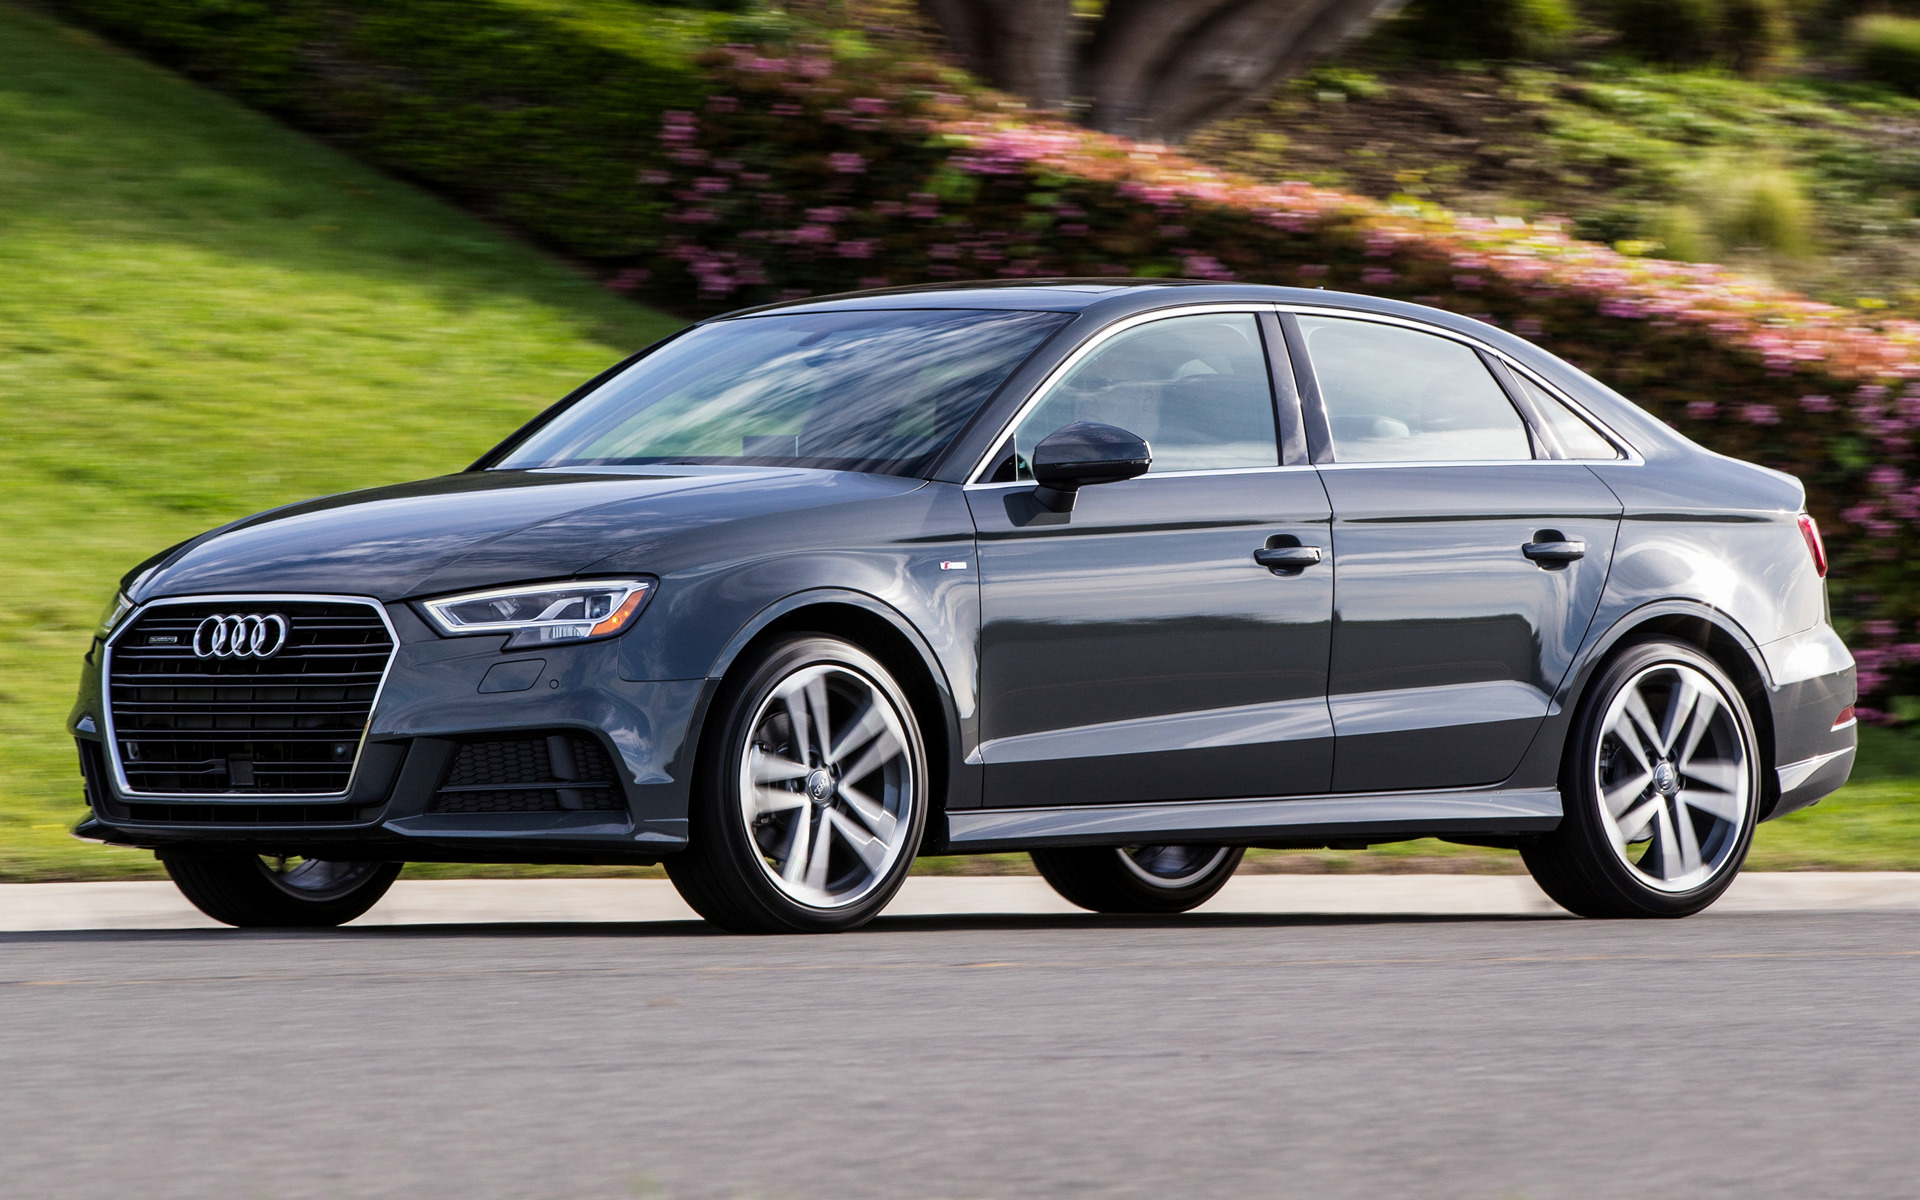 Audi A3 2019 >> 2017 Audi A3 Sedan S line (US) - Wallpapers and HD Images ...